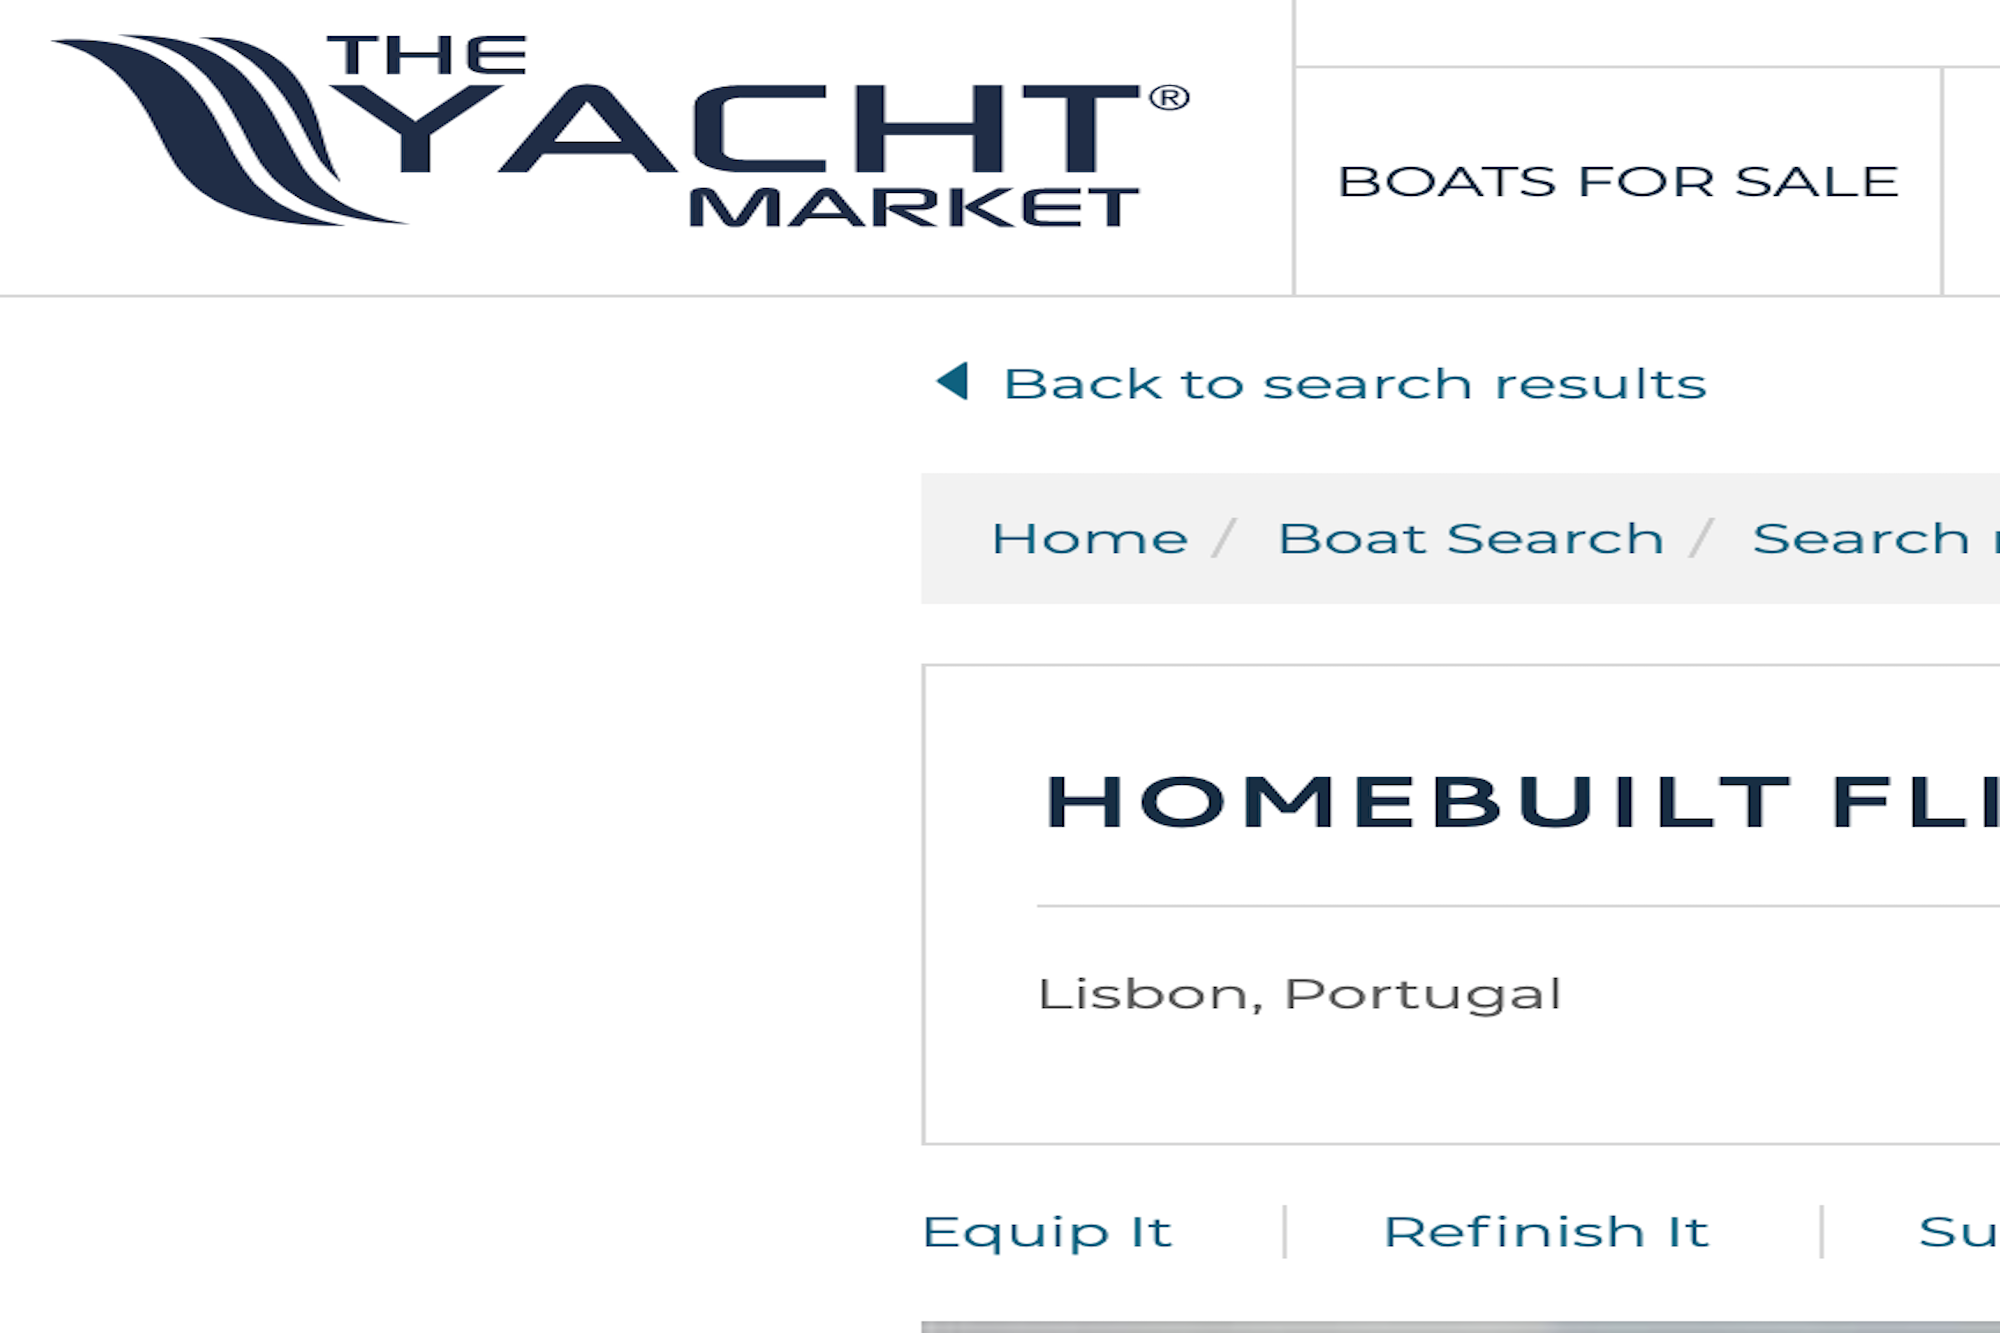 Blue Fin commences promo partnership with The Yacht Market